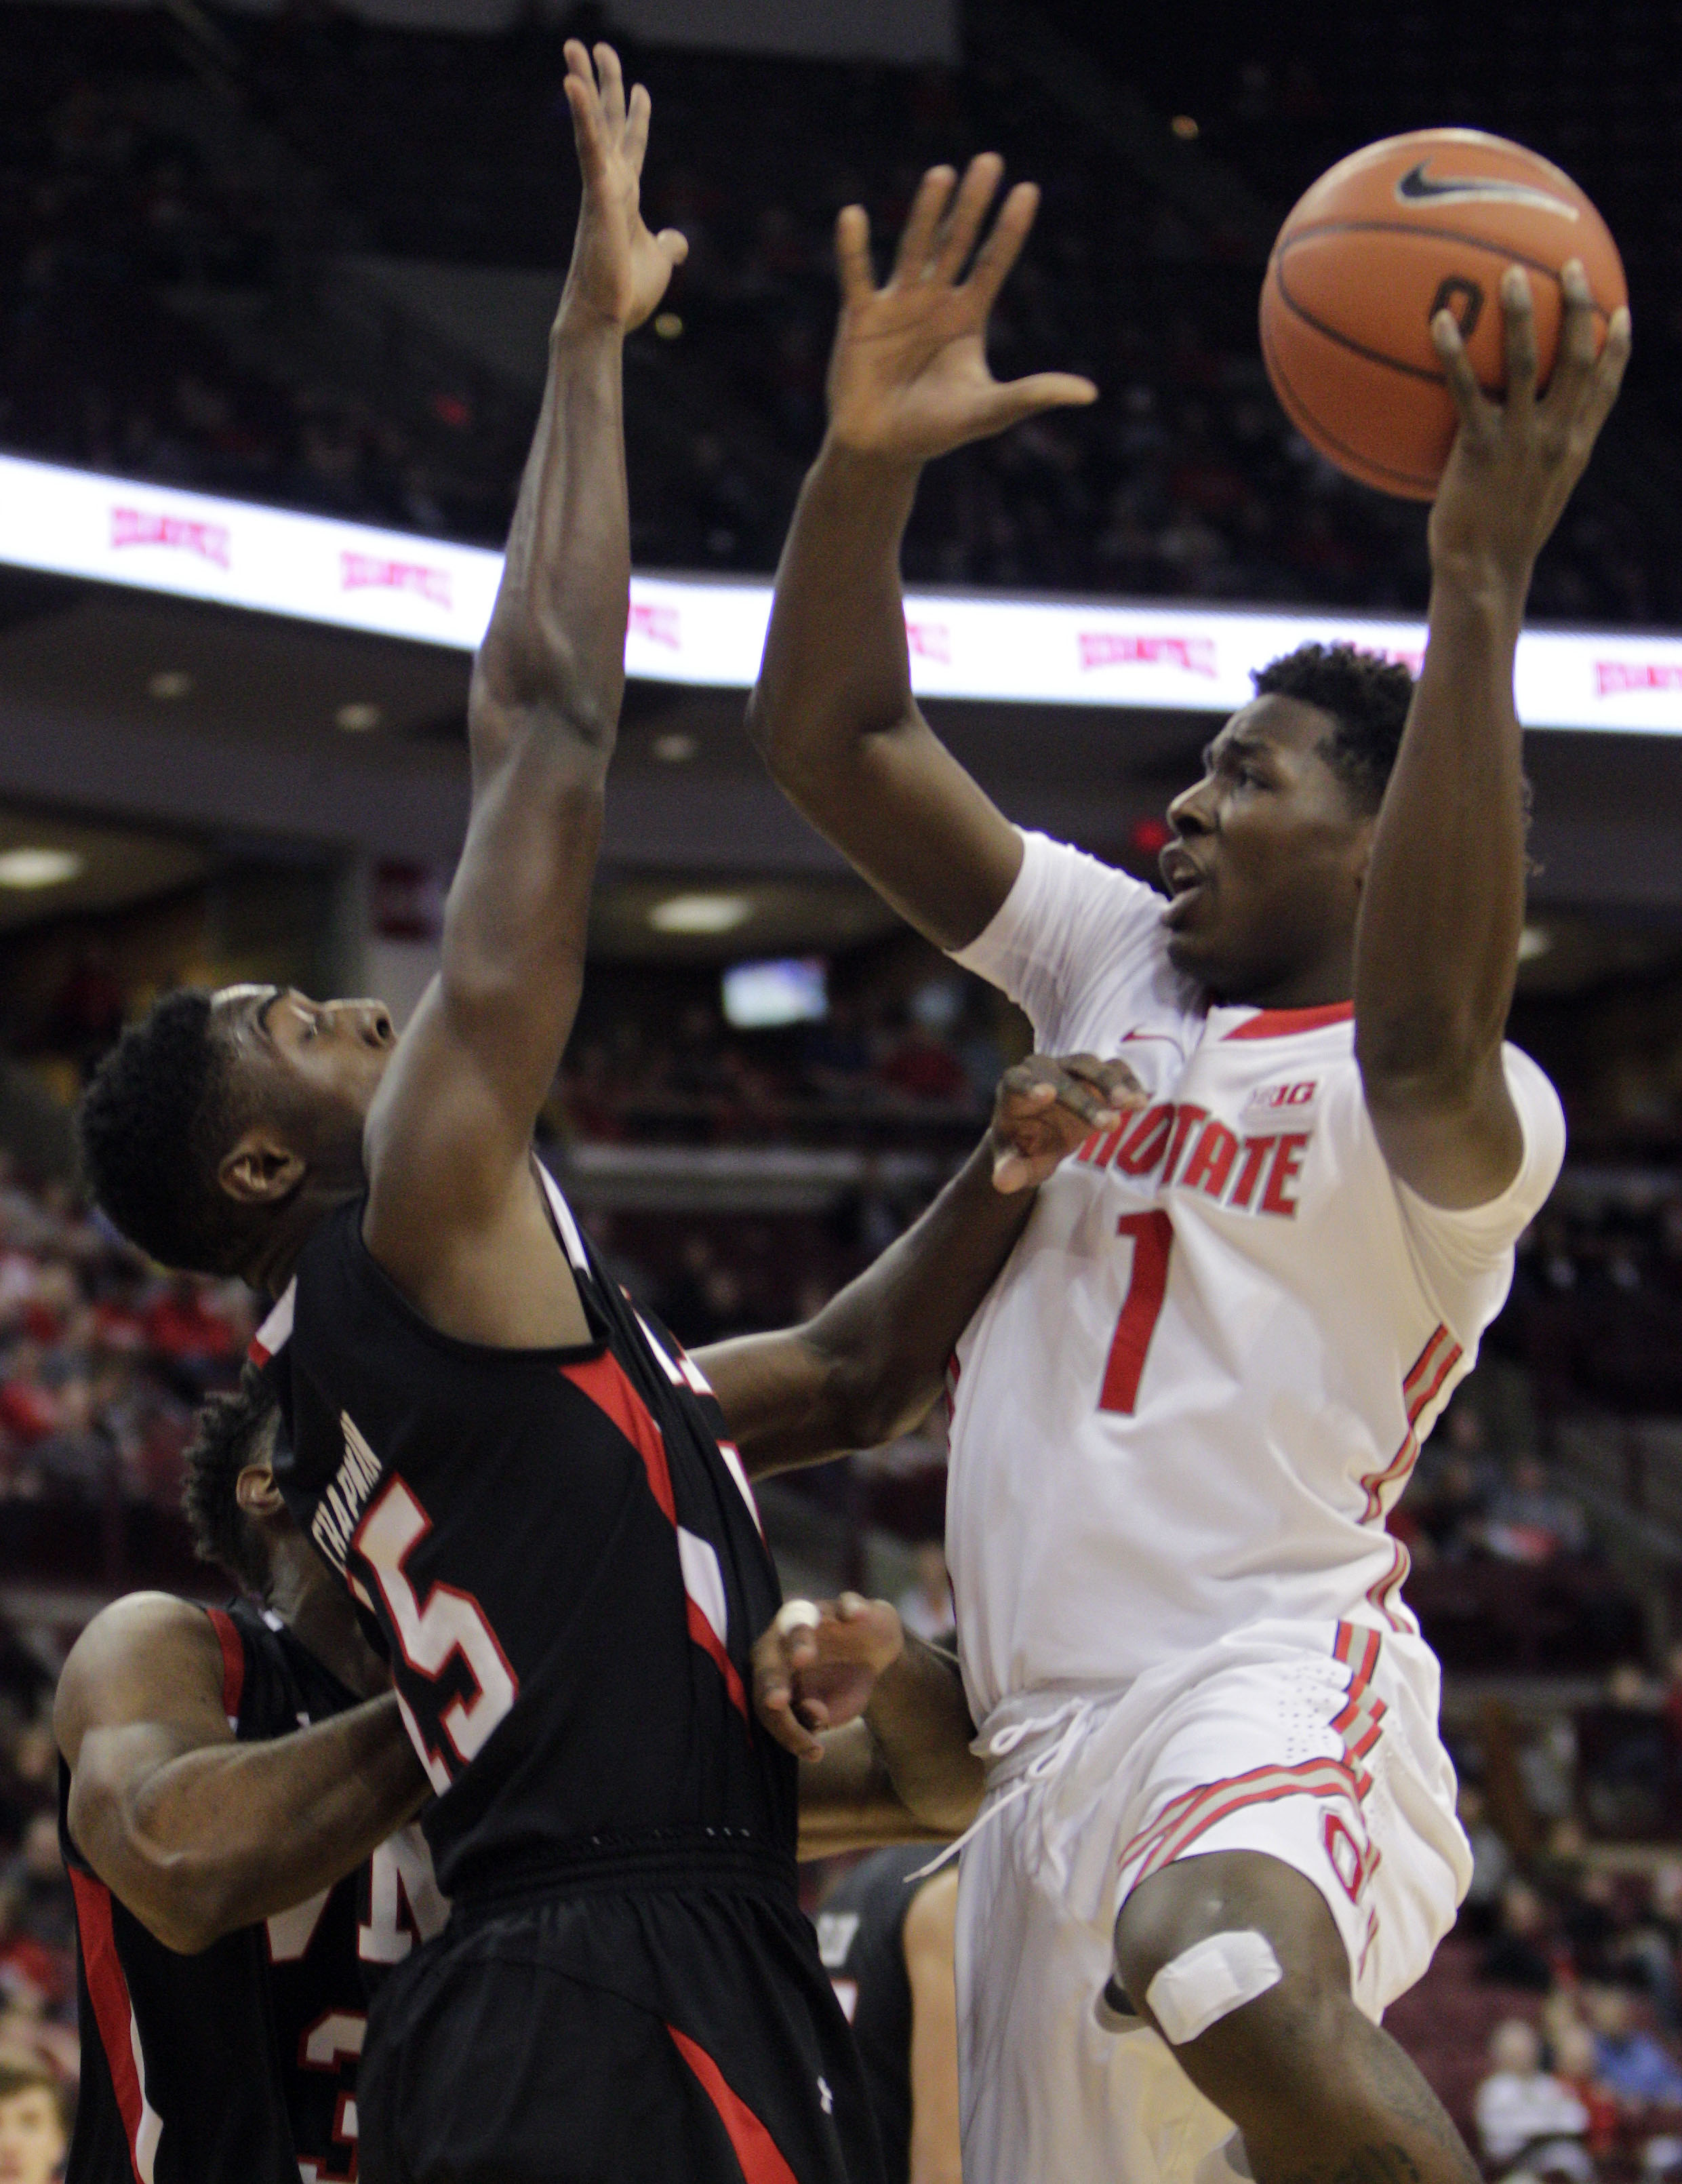 Ohio State's Jai'Sean Tate, right, shoots over VMI's Trey Chapman, left, during the first half of an NCAA college basketball game Saturday, Dec. 5, 2015, in Columbus, Ohio. (AP Photo/Jay LaPrete)